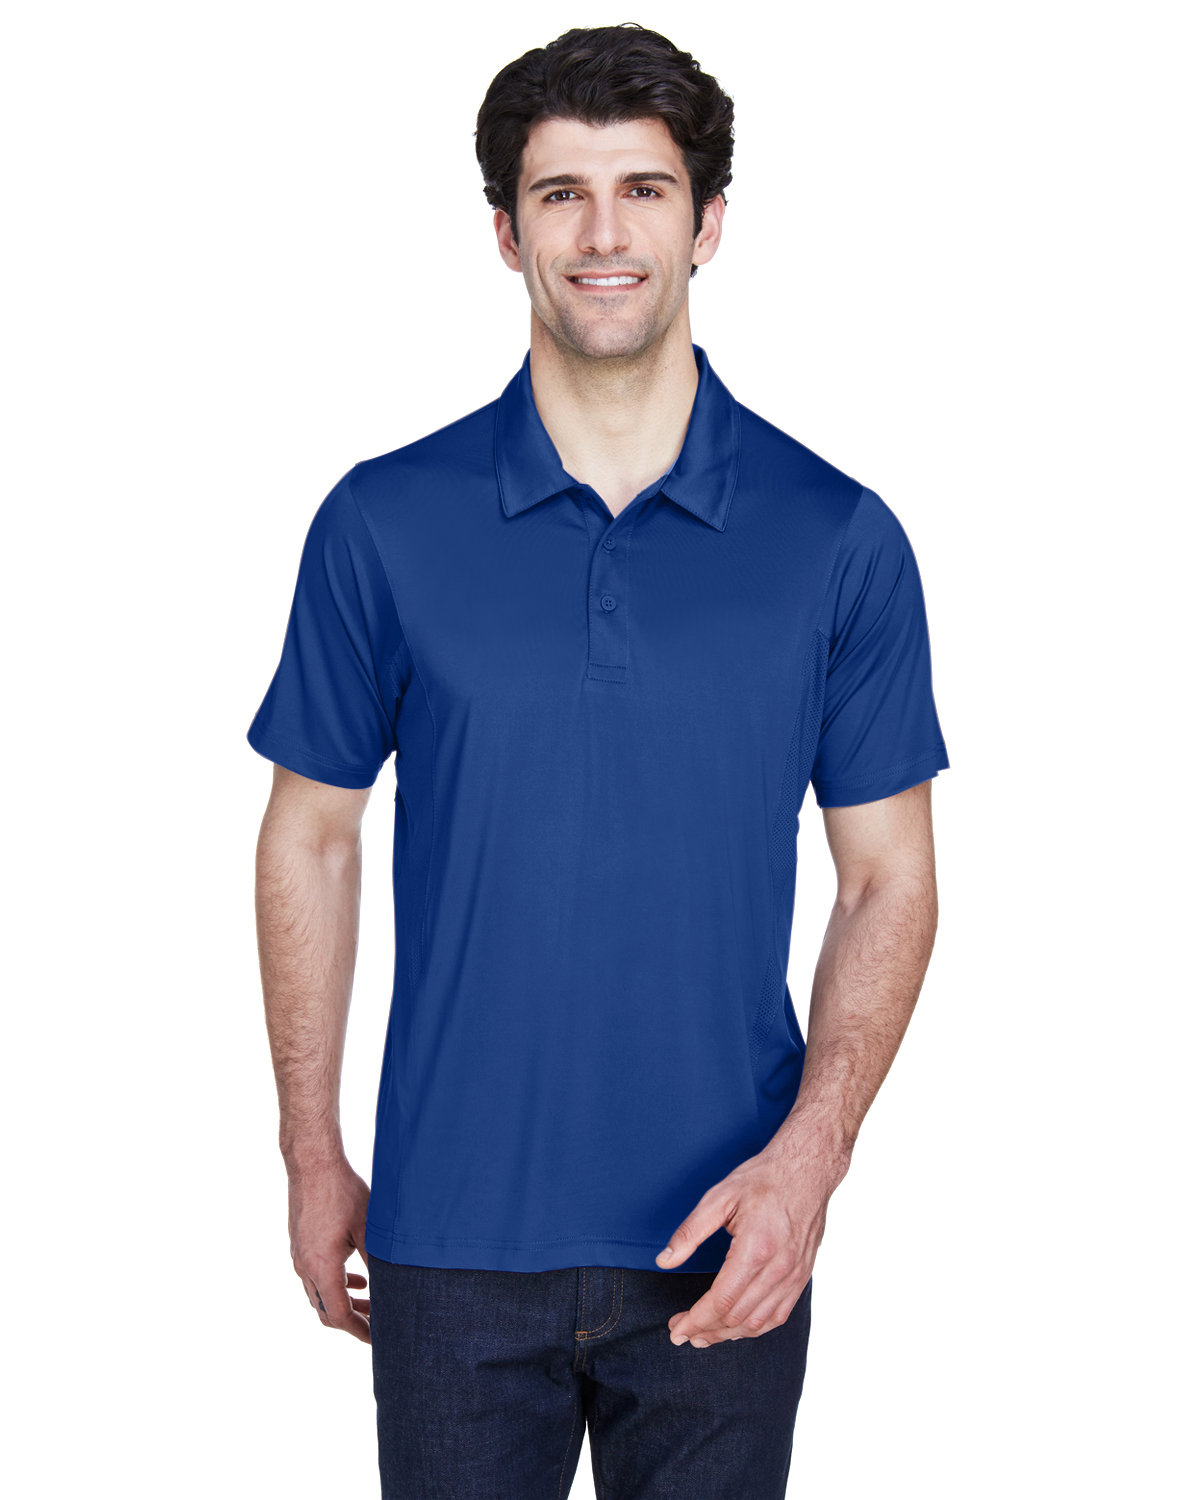 Team 365 Men's Charger Performance Polo SPORT ROYAL